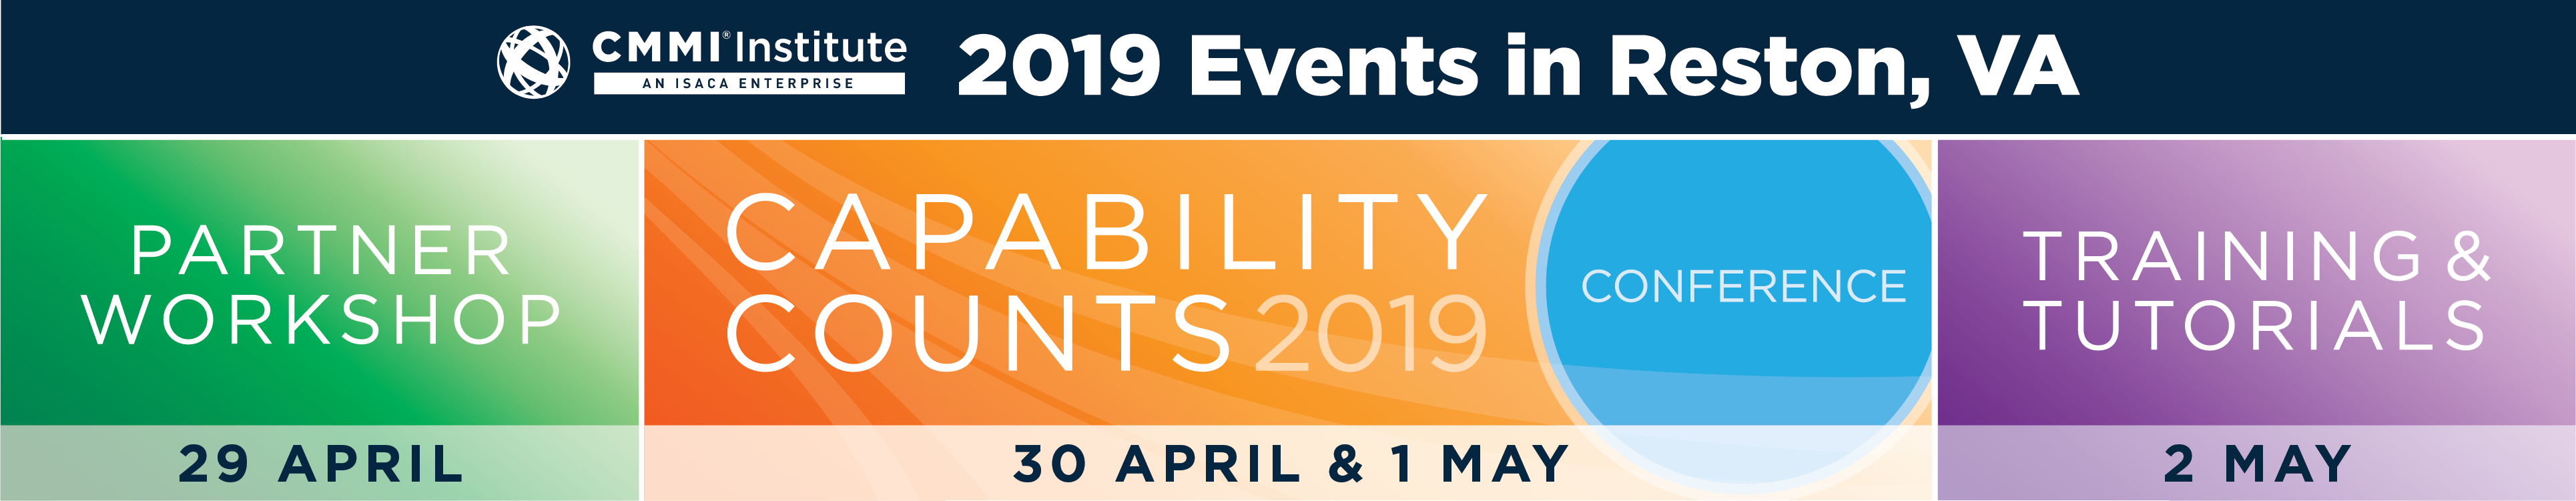 CMMI Institute May 2019 Events